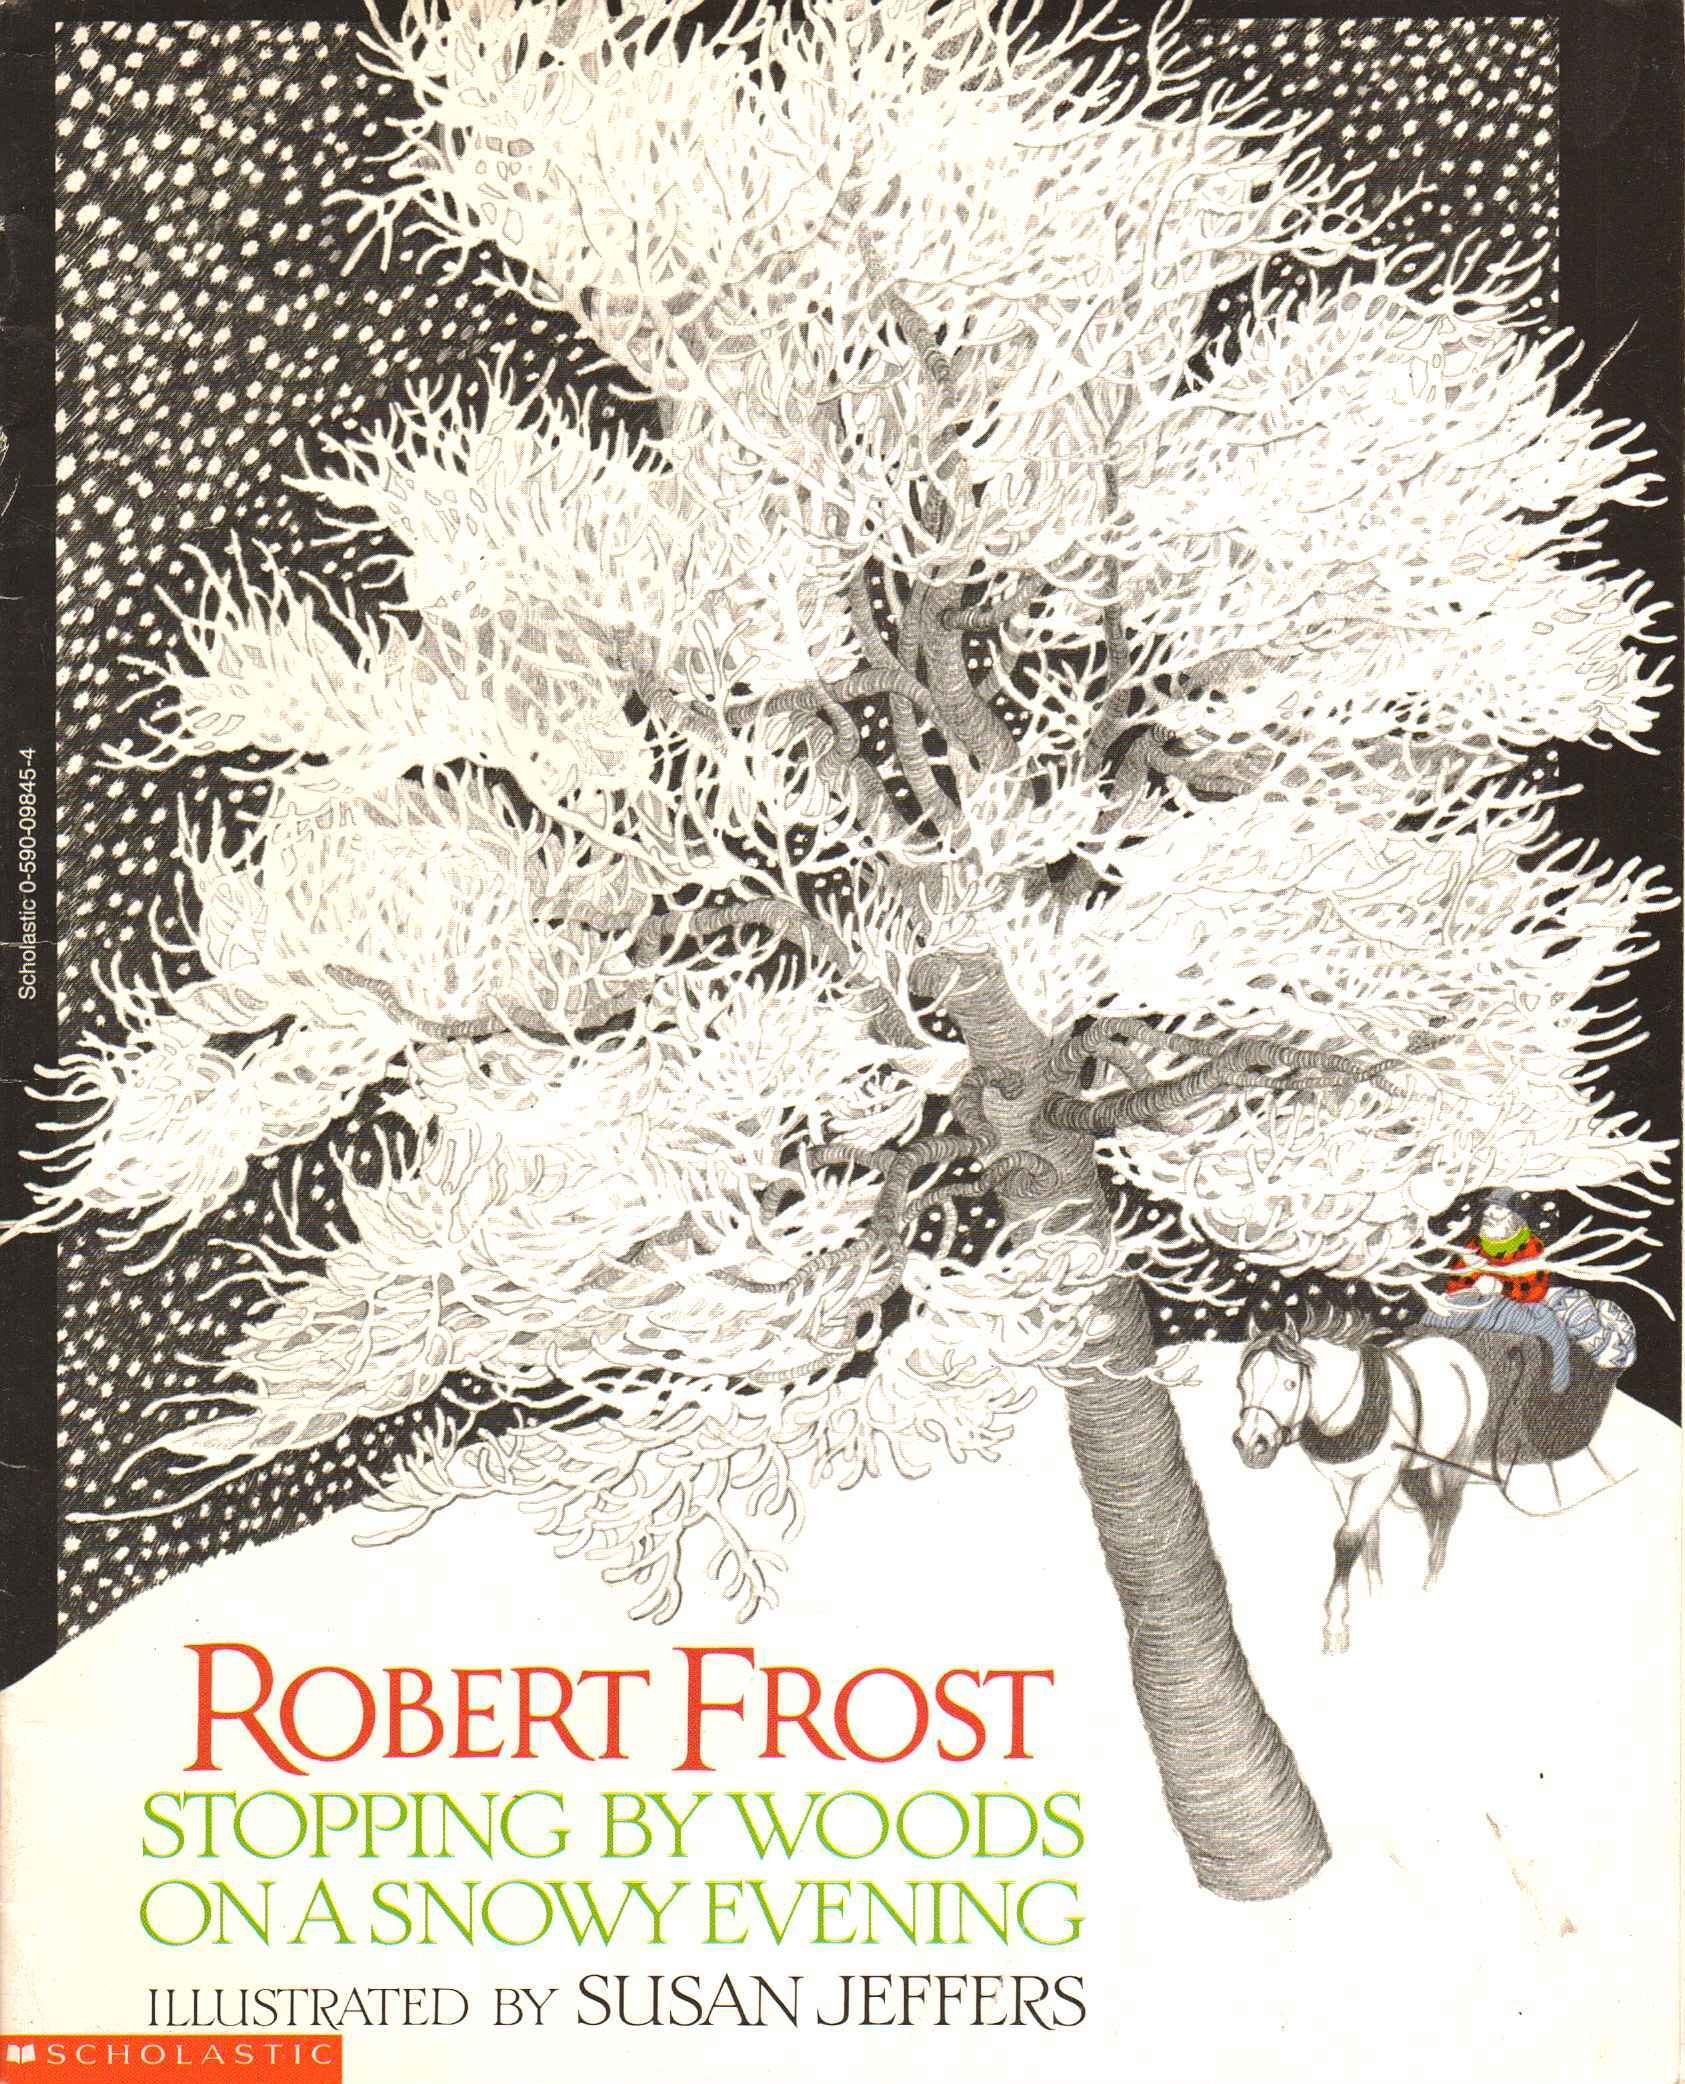 the inner thoughts of man in stopping by the woods on a snowy evening by robert frost Stopping by woods on a snowy evening is one of robert frost's most famous poems, filled with vivid imagery and the theme of.